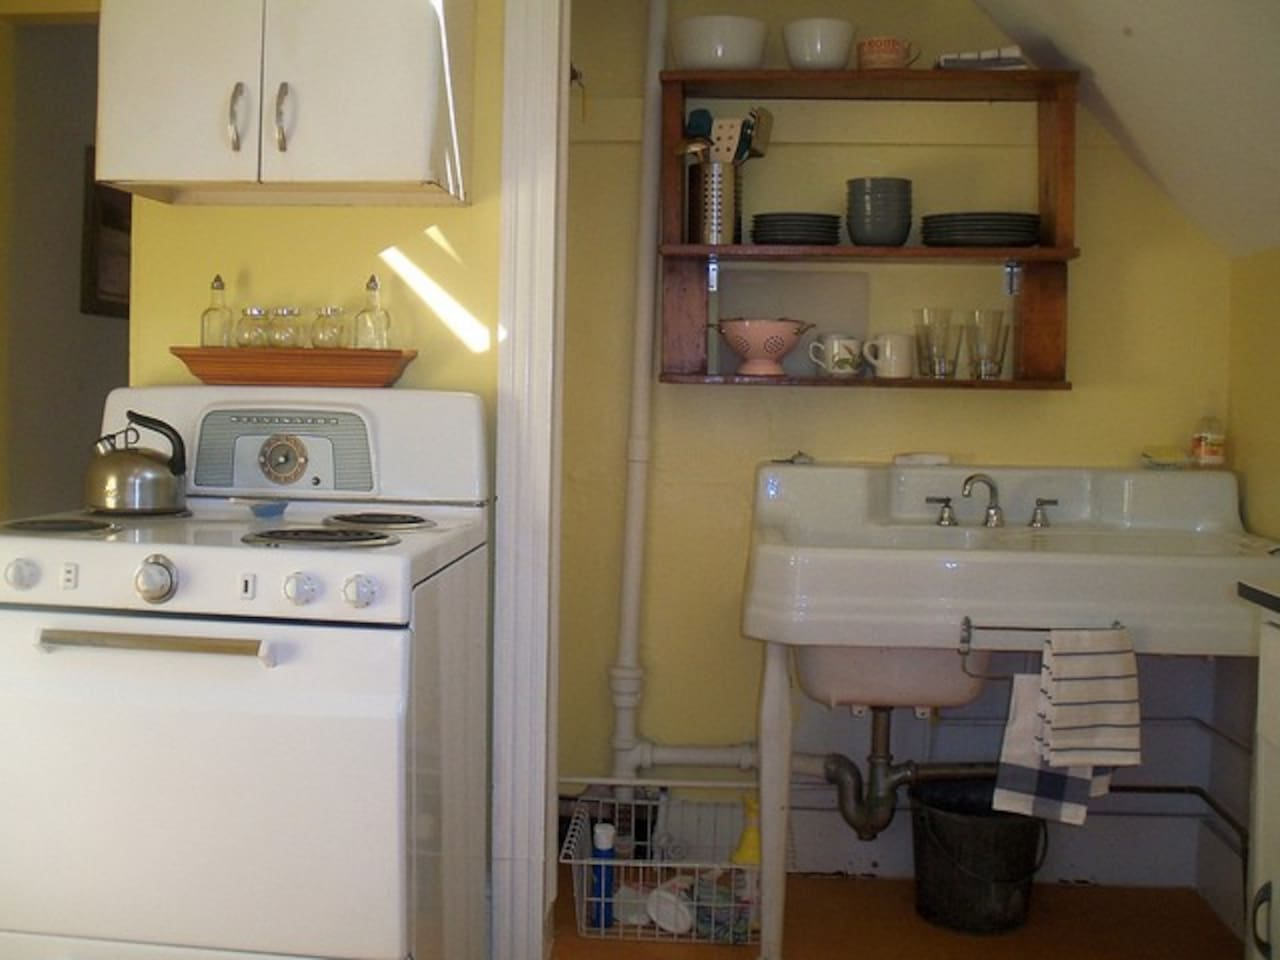 Vintage Kitchen...  A beautiful farmers sink, kitchy Kelvinator range, plus basic cooking and dining accessories